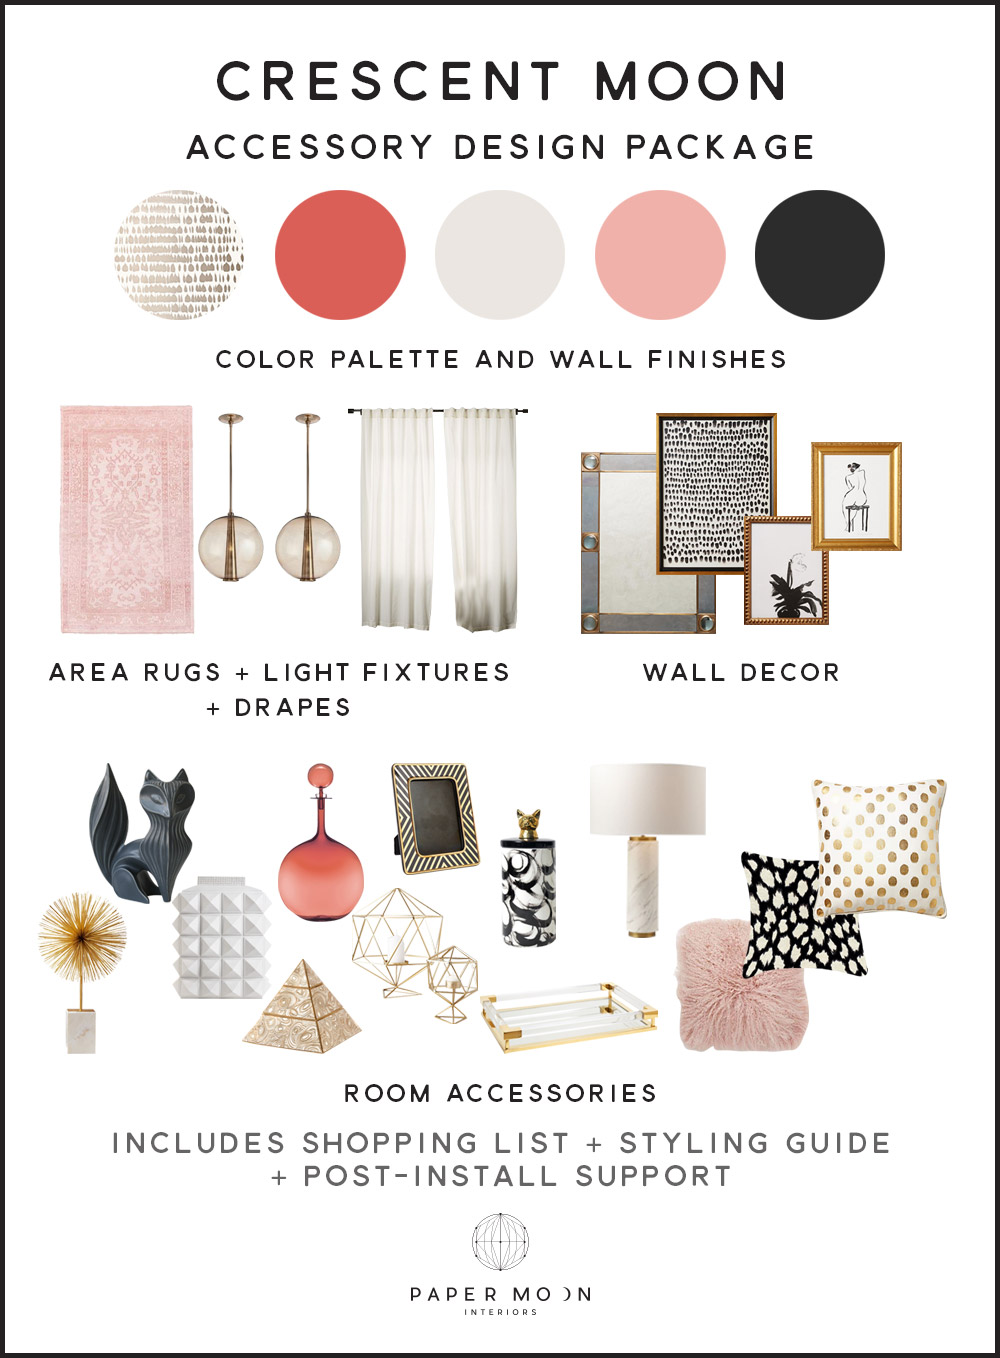 Paper Moon Interiors Online Interior Design Services Accessories Package